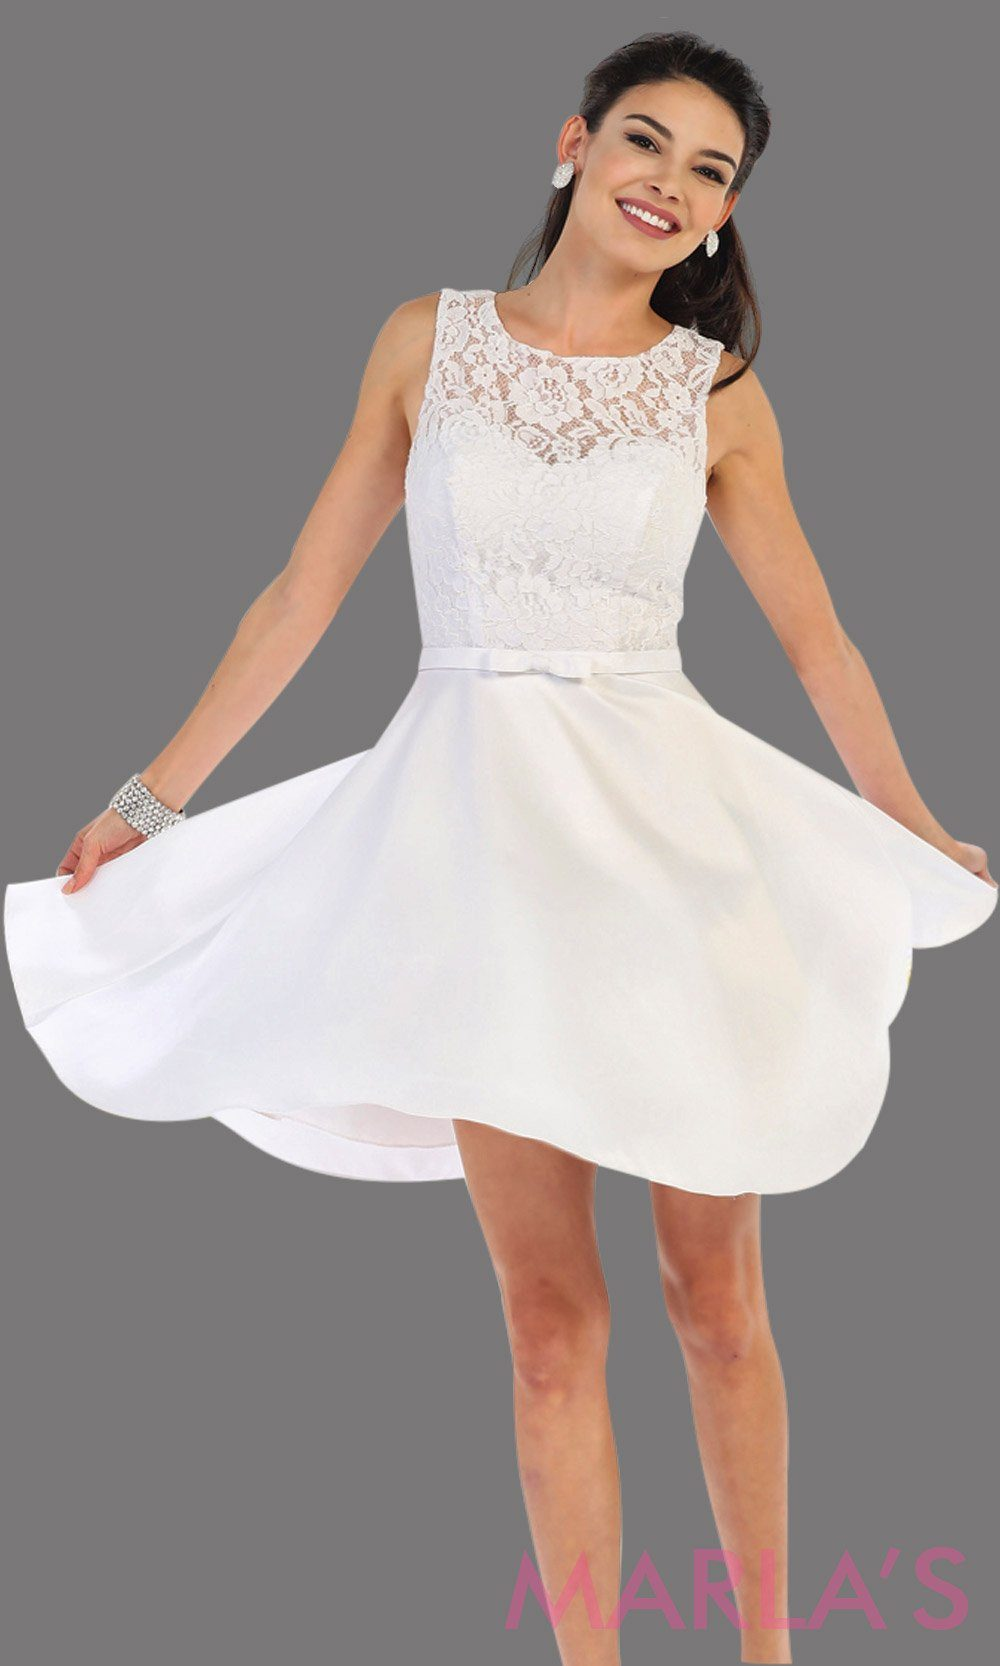 a84d1e67920 Short simple semi formal white dress with lace bodice and satin skirt white  dress jpg 1000x1666